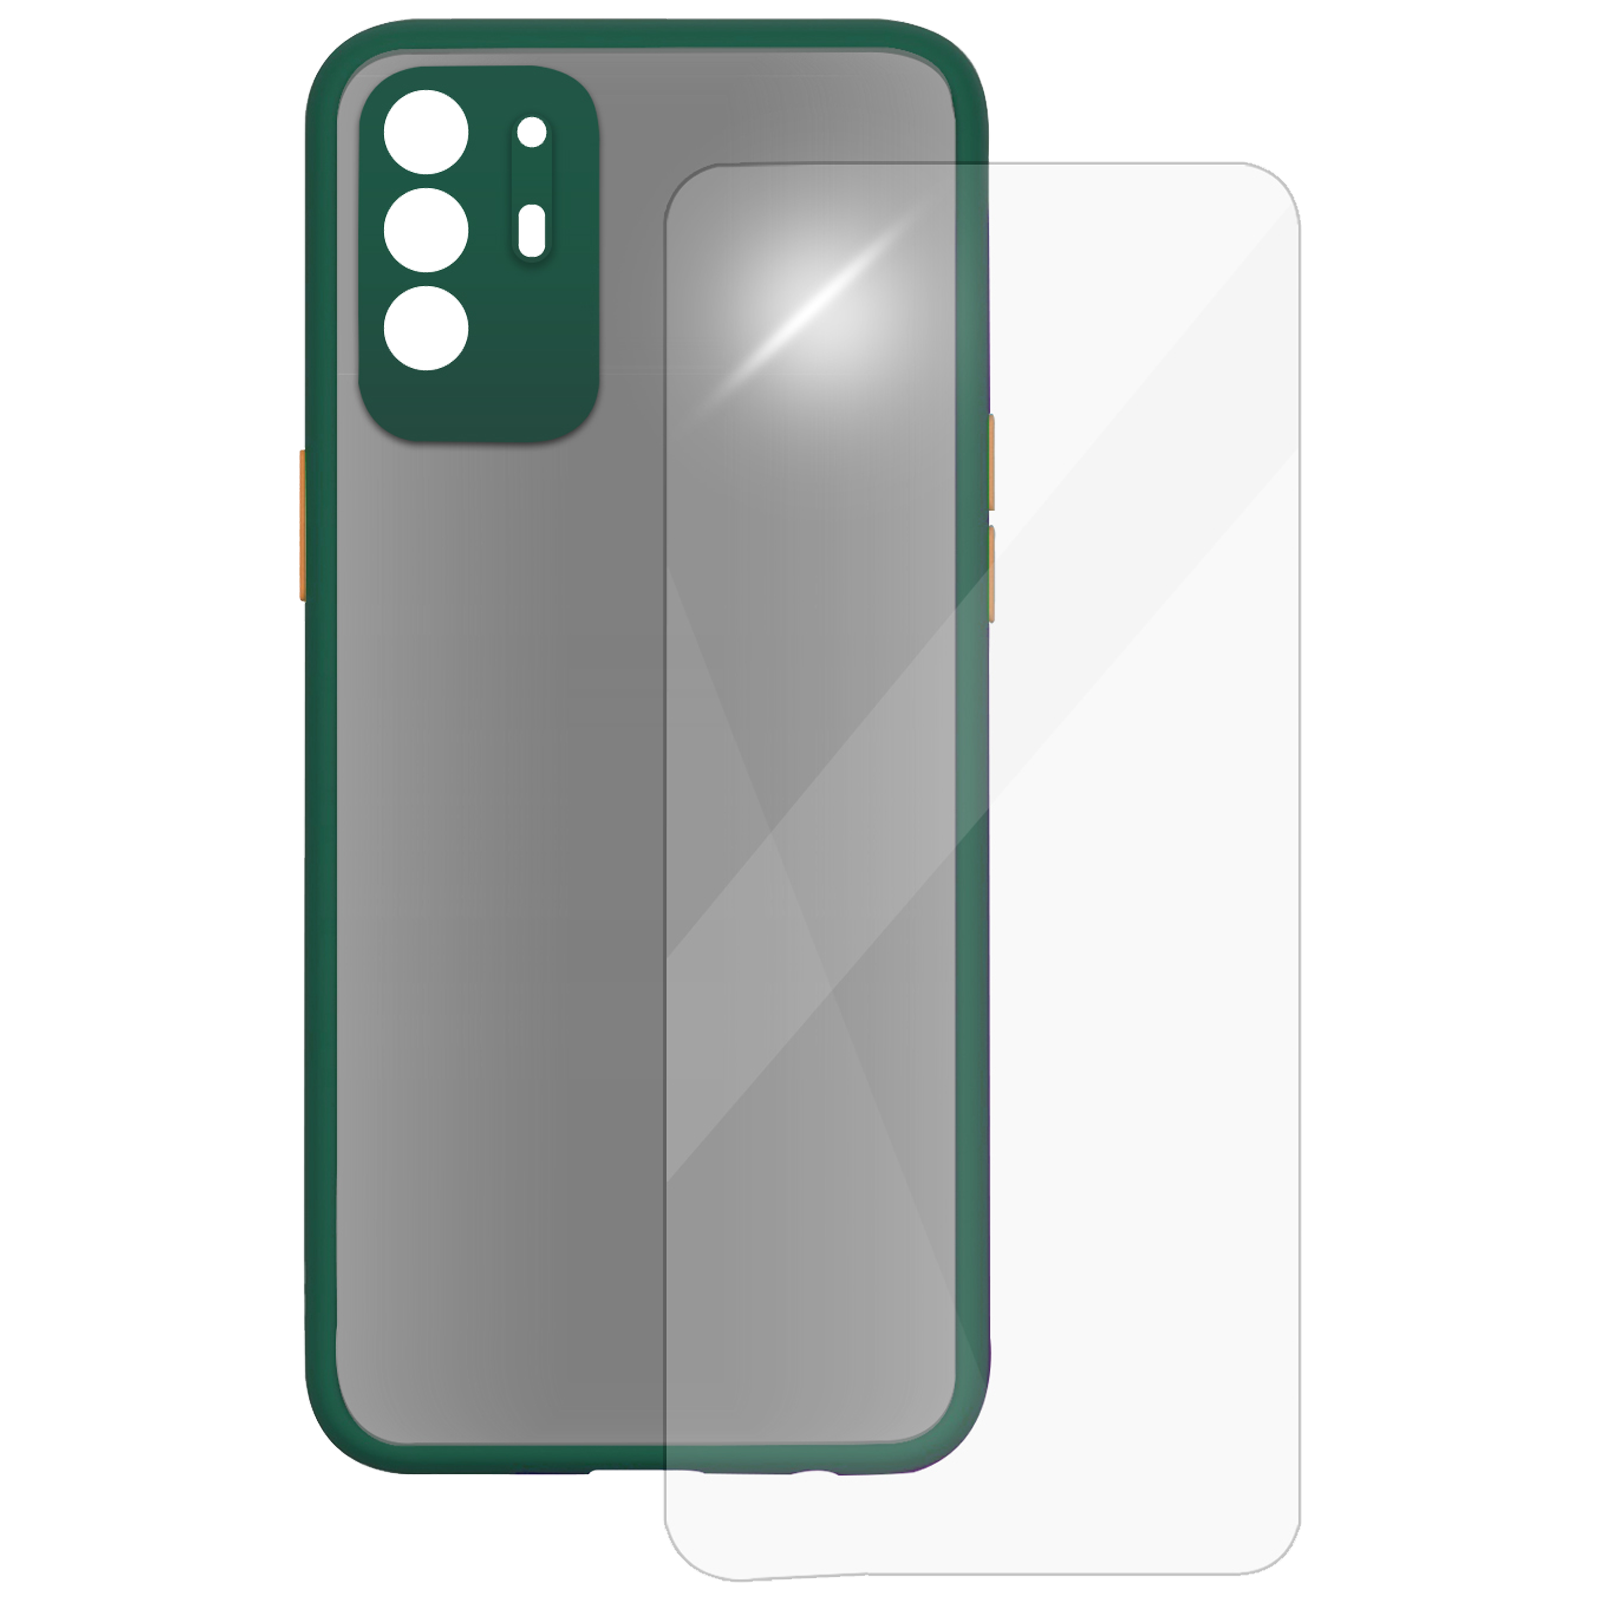 Arrow Camera Duplex Back Case and Screen Protector Bundle For Oppo F19 Pro+ (Enhanced Camera Protection, AR-991, Dark Green)_1